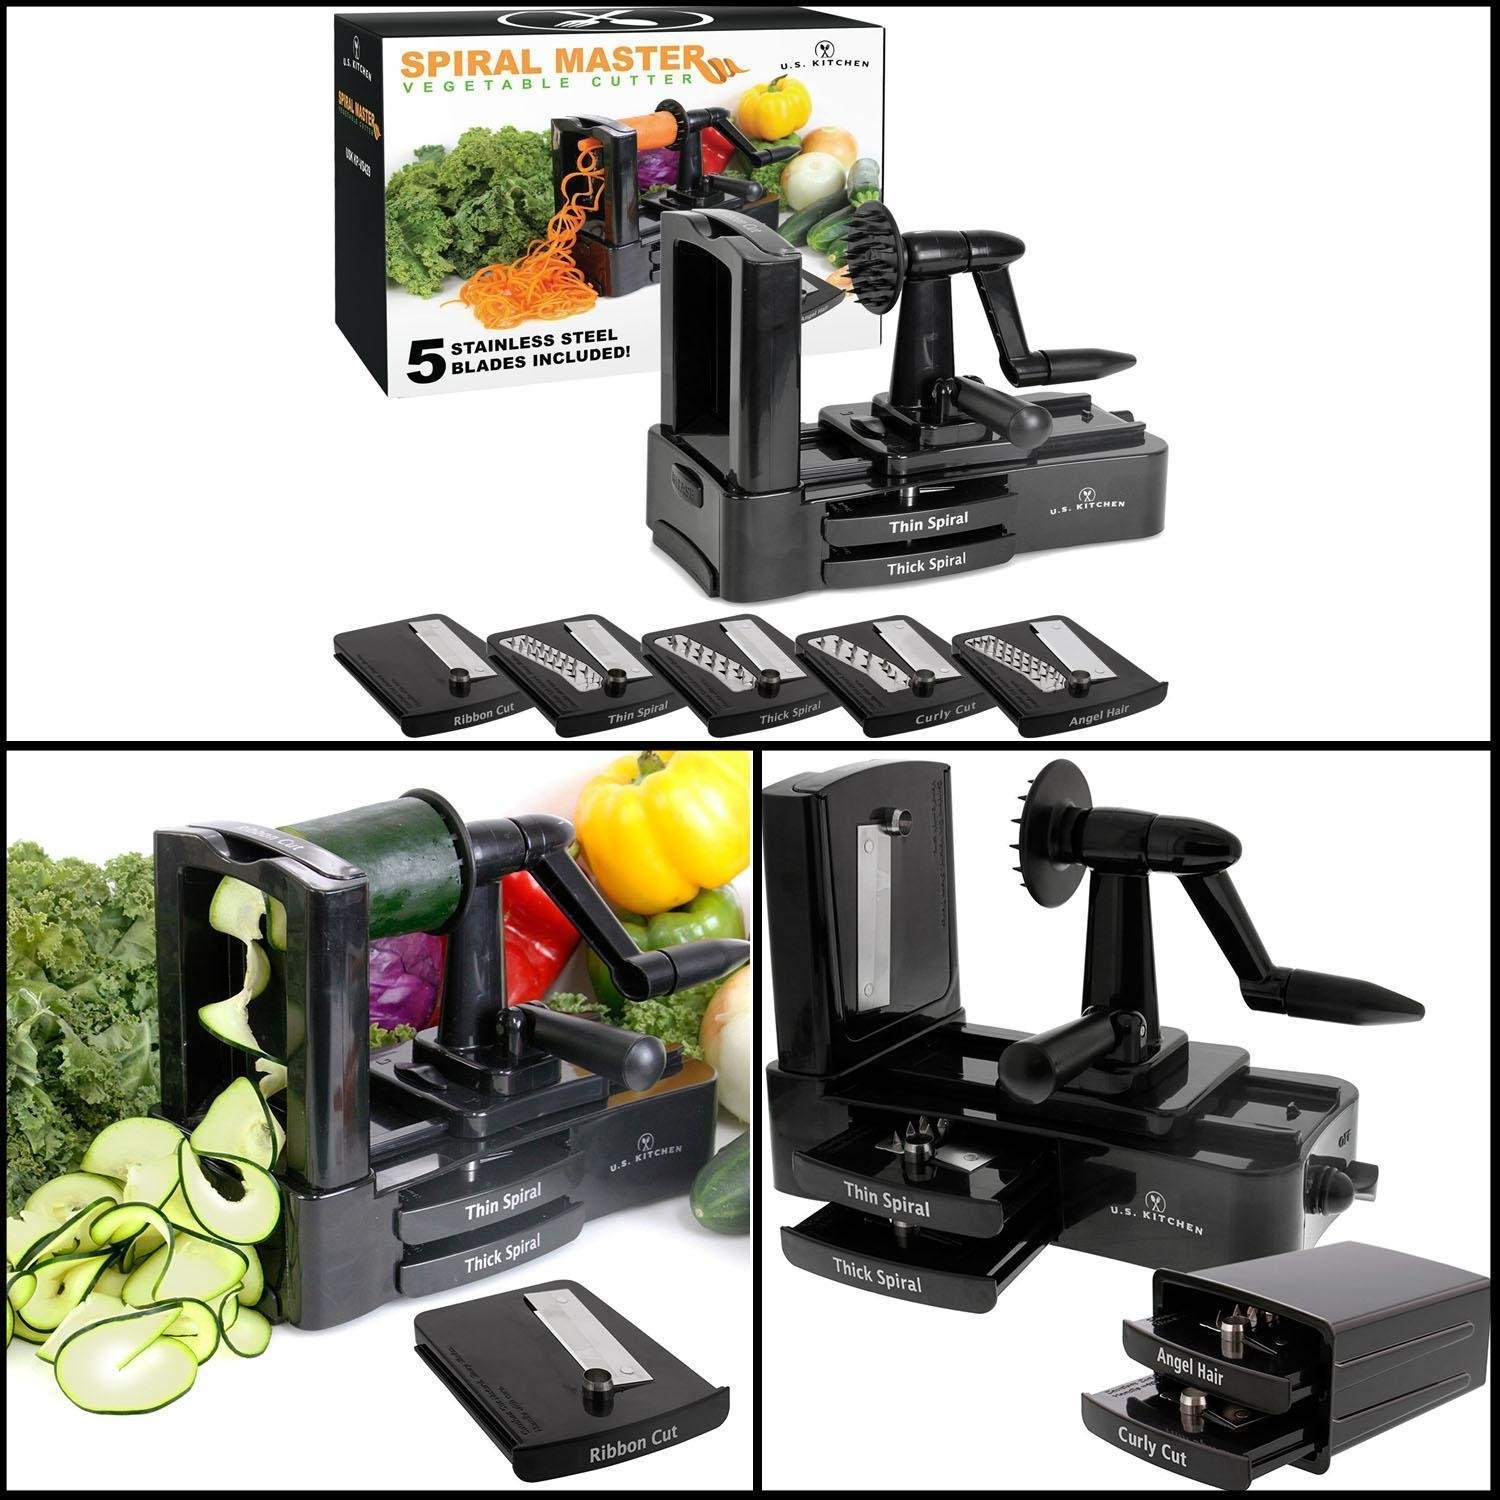 U.S. Kitchen Supply Spiral Master Vegetable Cutter with 5 Versatile...